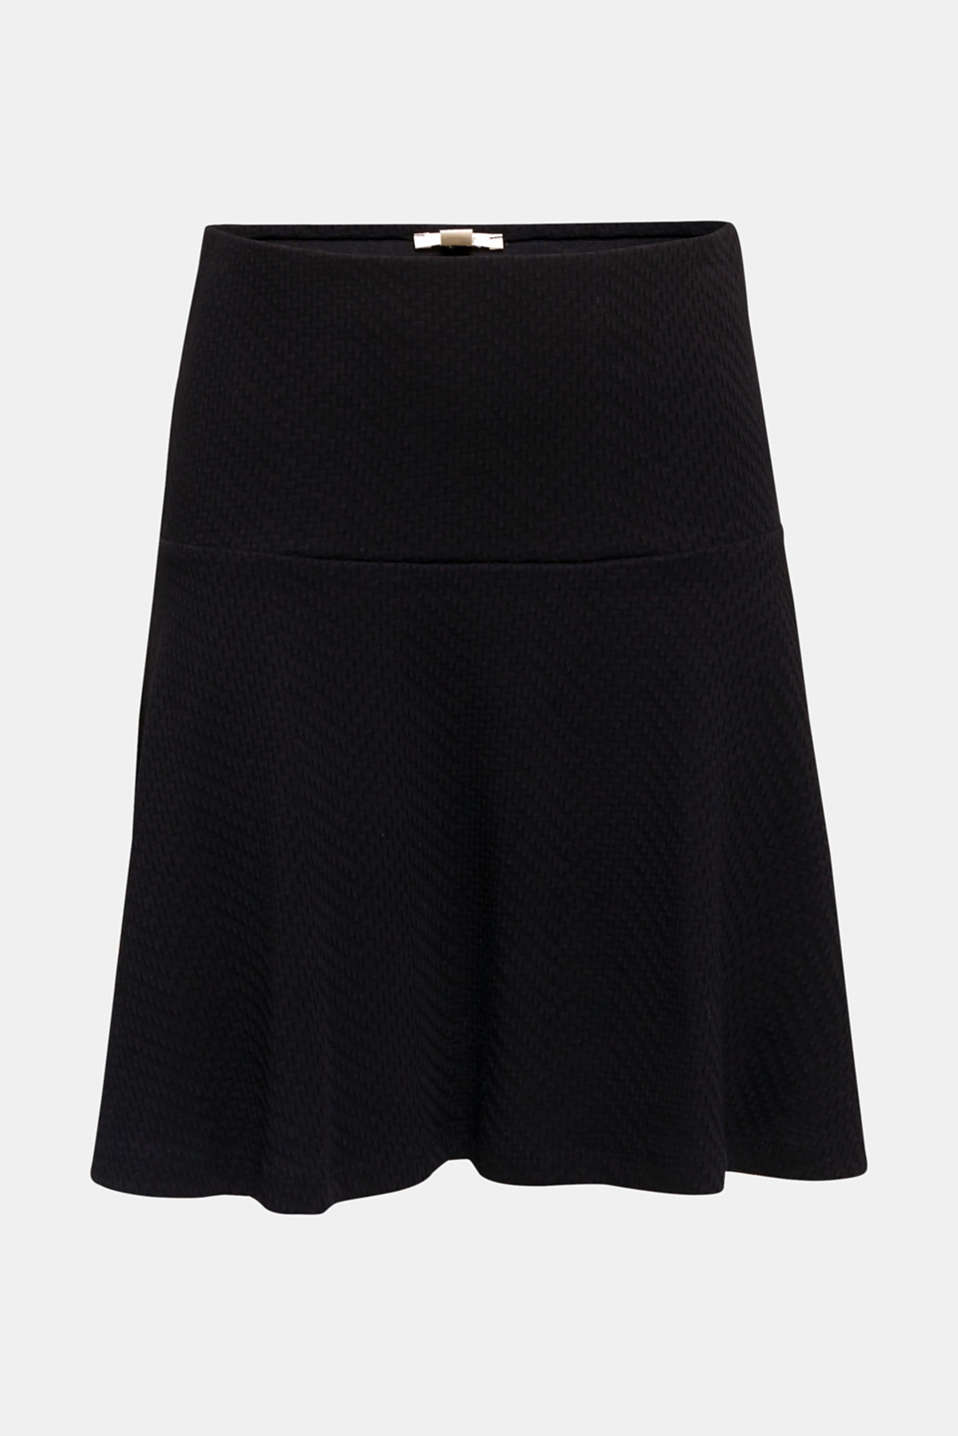 Textured jersey skirt, 100% cotton, BLACK, detail image number 6